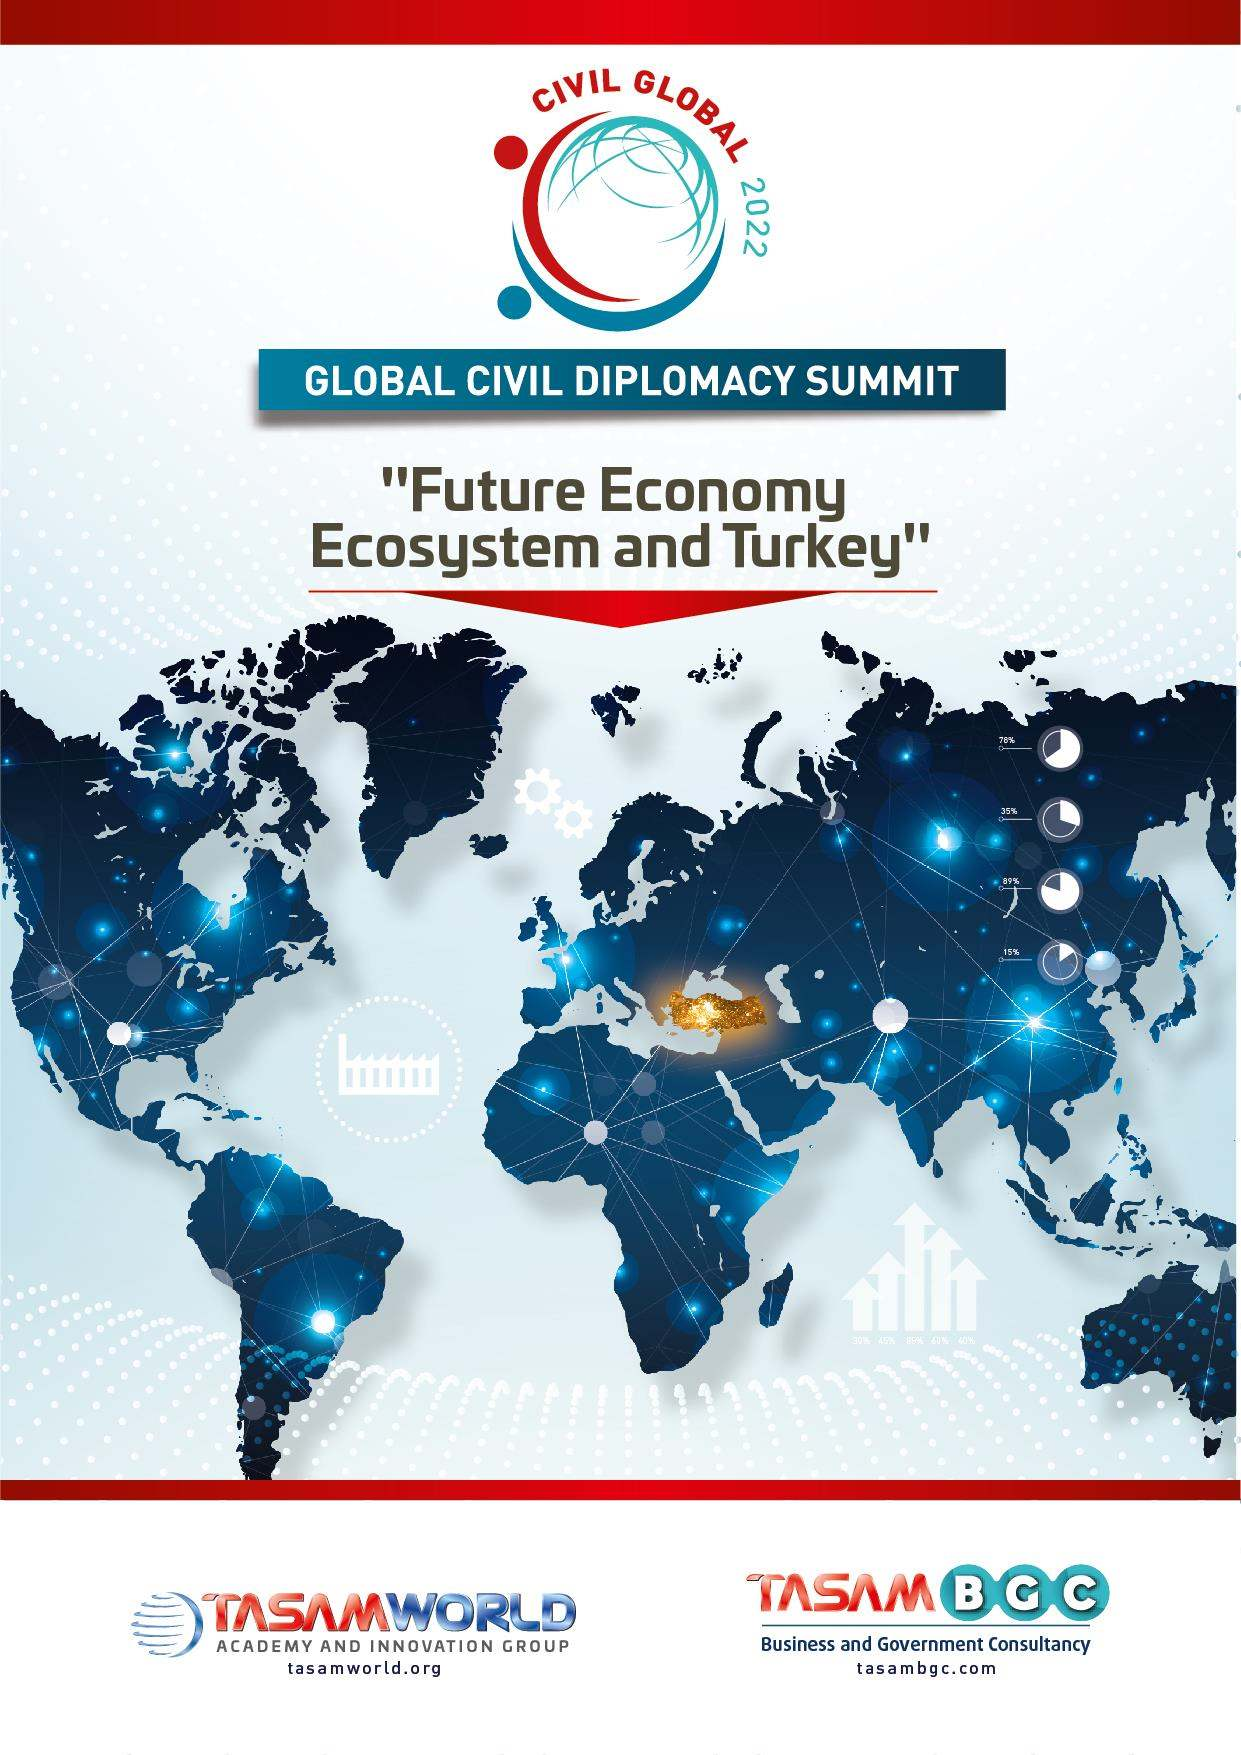 CIVIL GLOBAL 2020 | Global Civil Diplomacy Summit